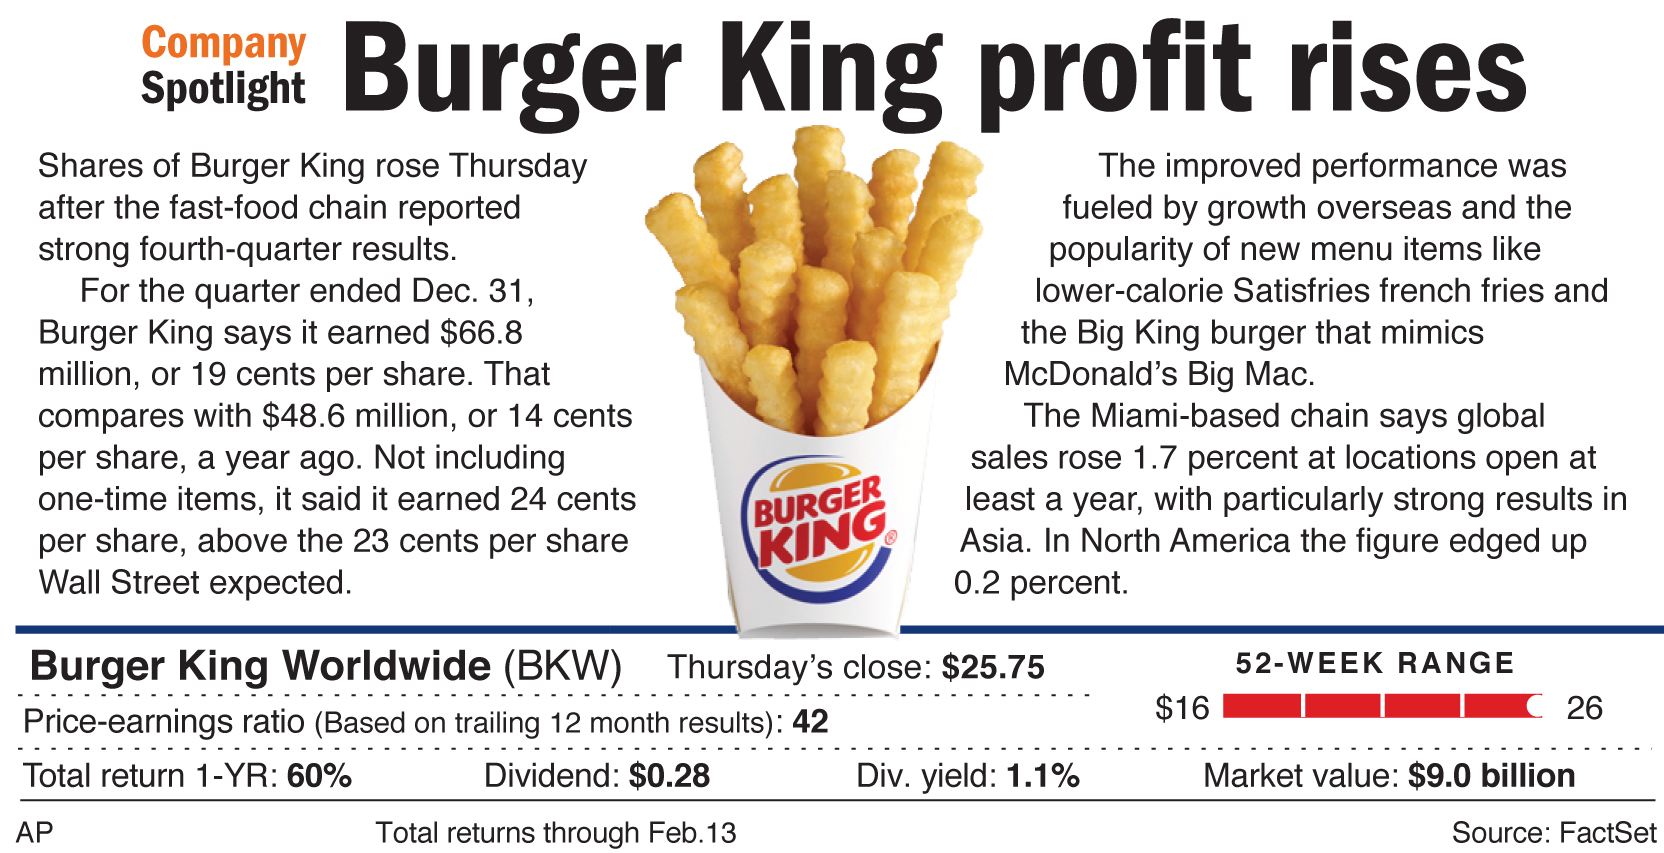 burger kings value chain Answer to identify burger king's value chain activities that you believe to be the most important (in priority order) to the compa.